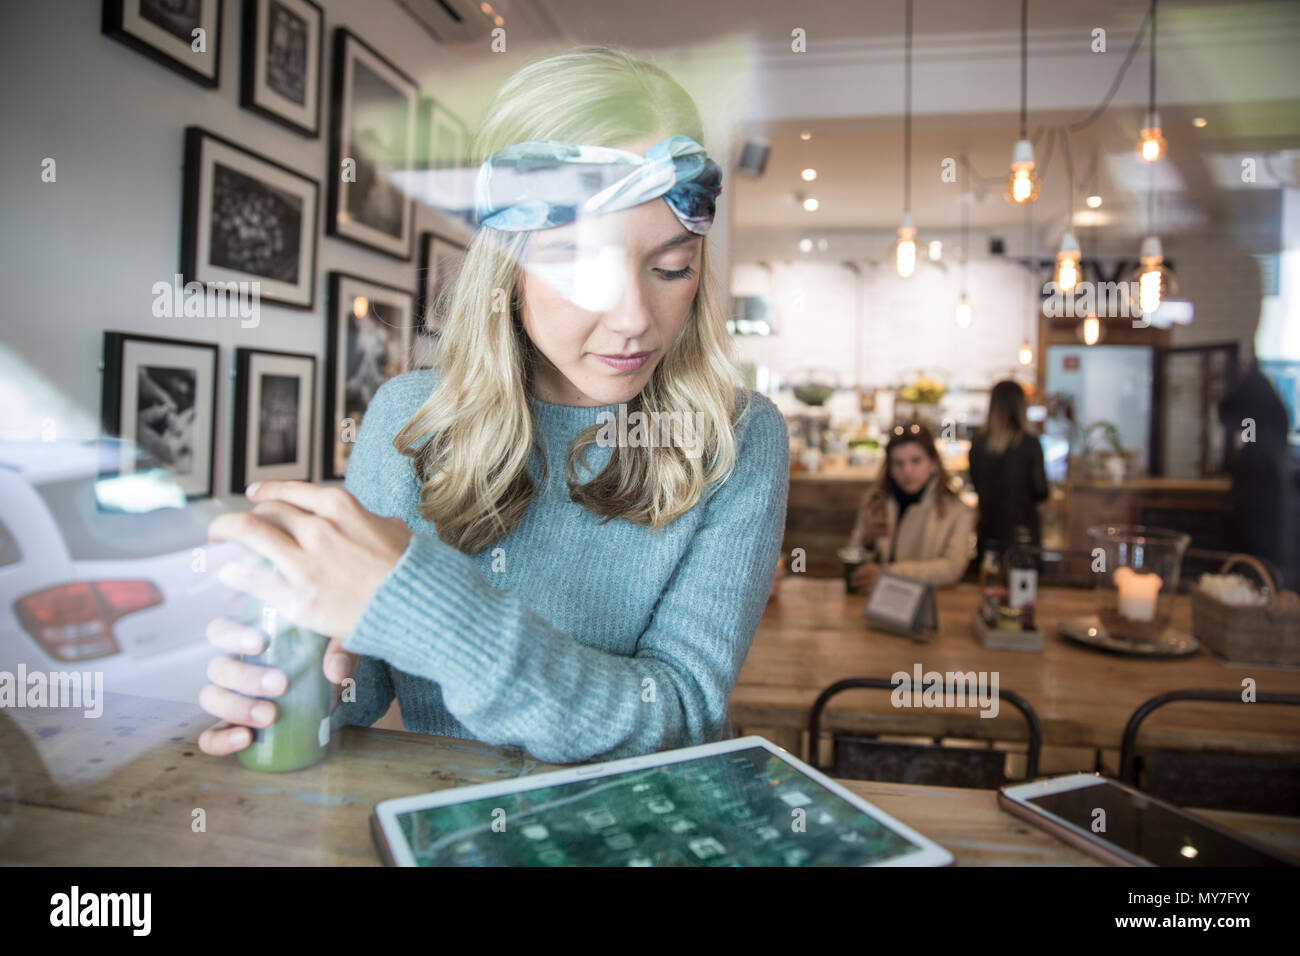 Young woman with vegetable juice looking at digital tablet in cafe window seat - Stock Image